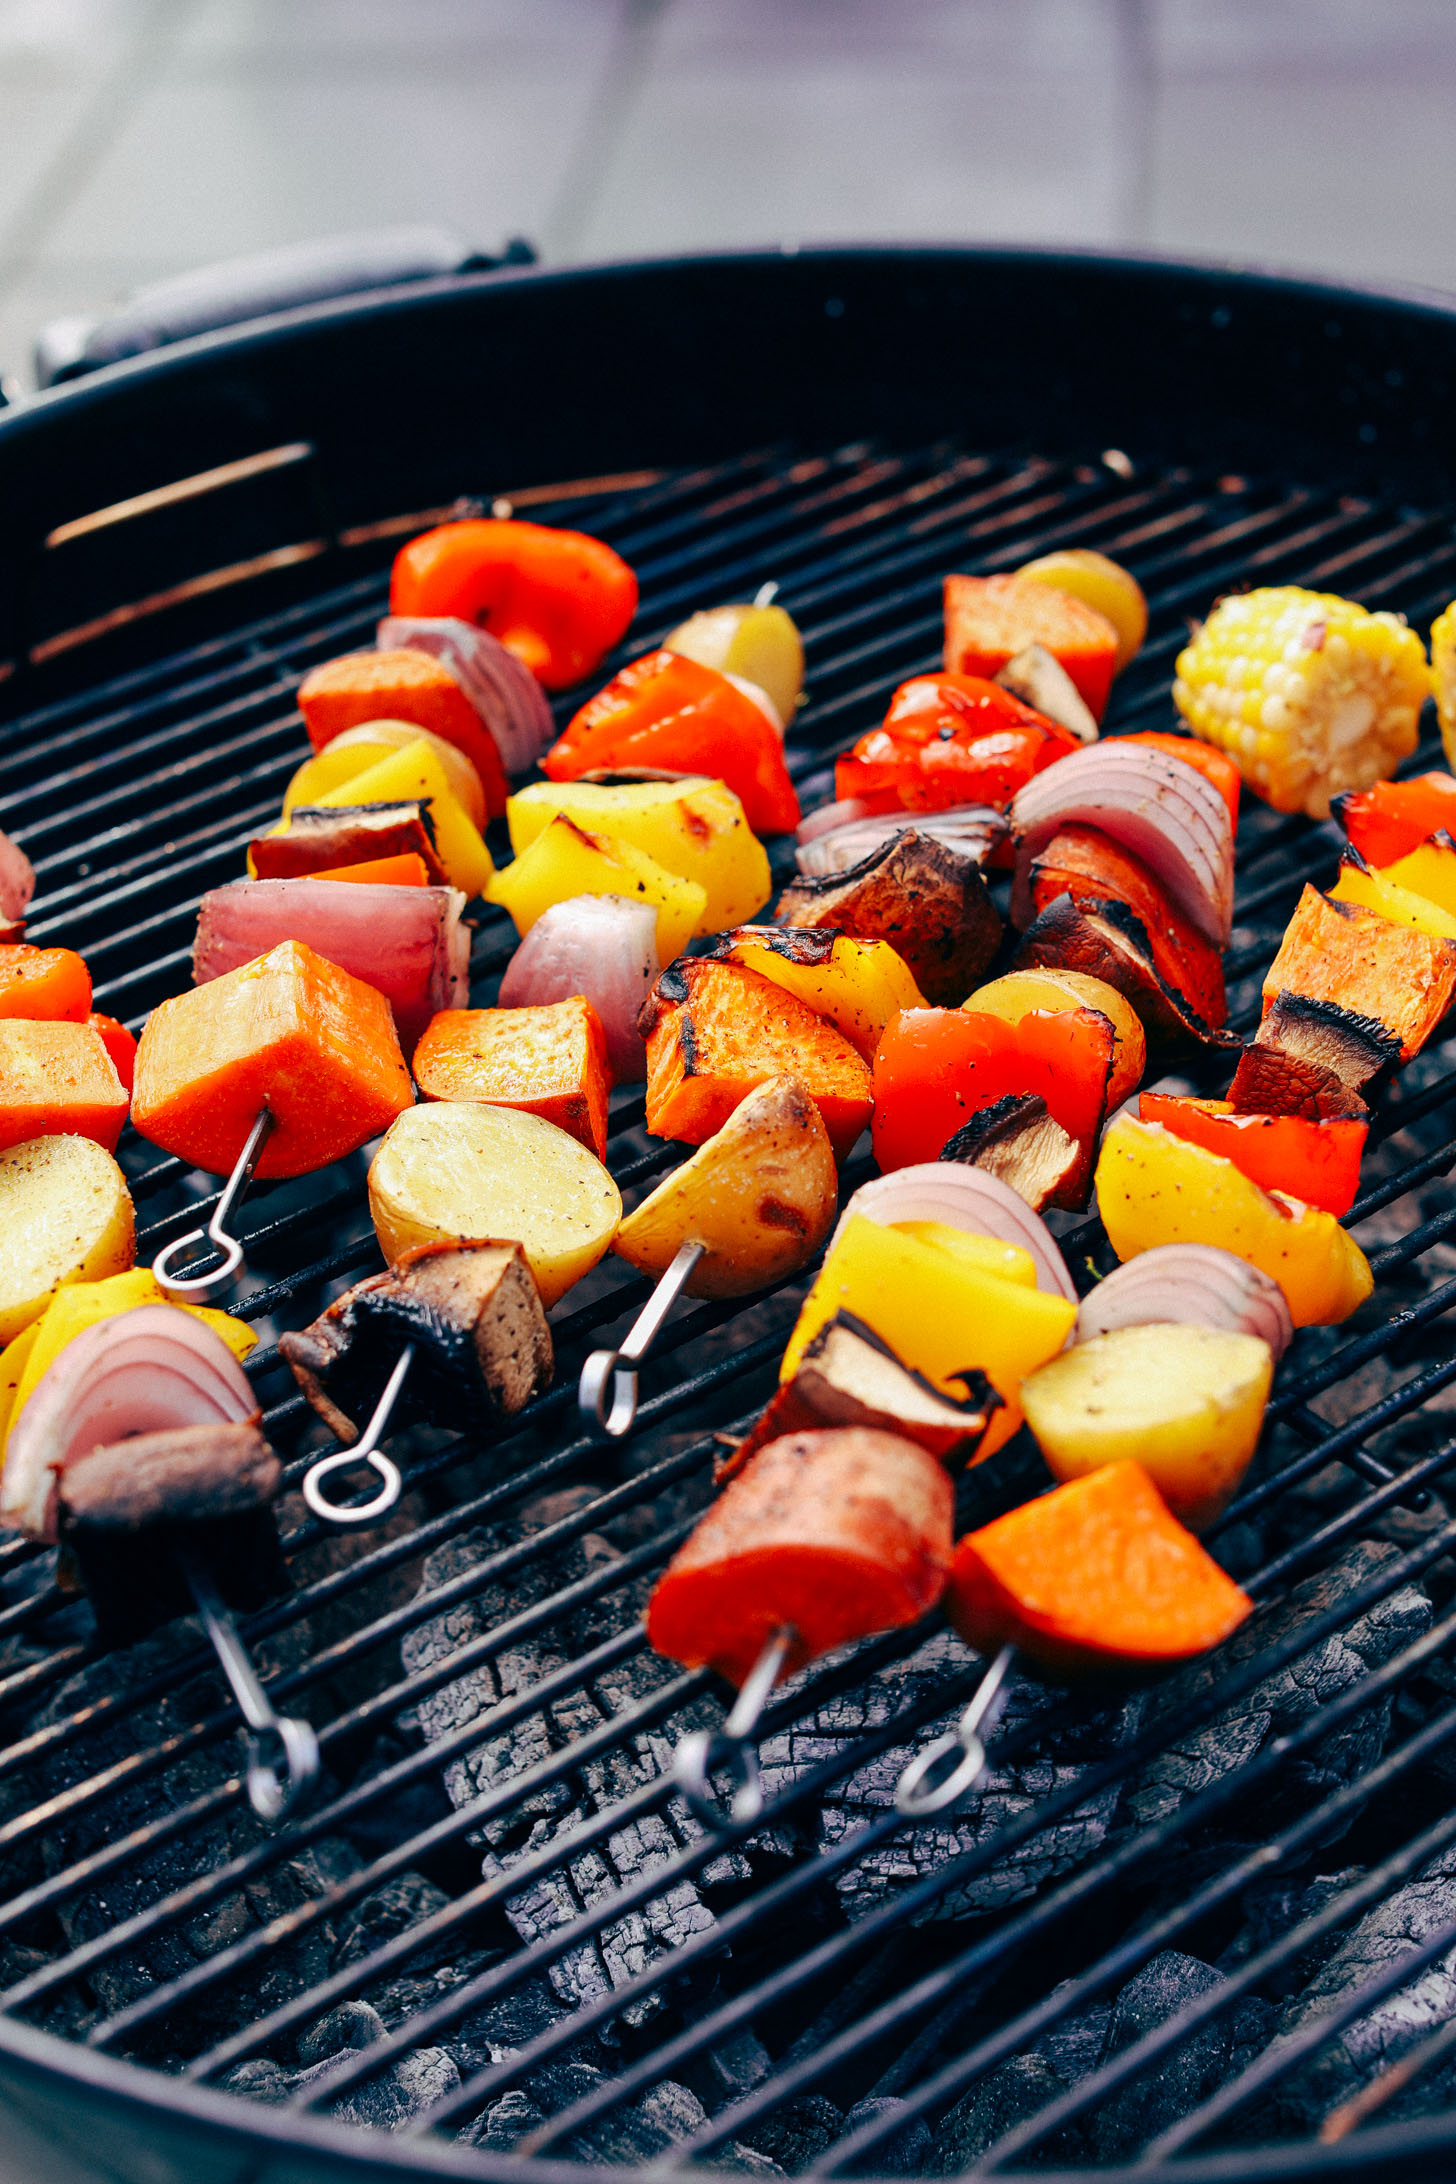 Grilled Veggie Skewers with Chimichurri Sauce | Minimalist Baker Recipes